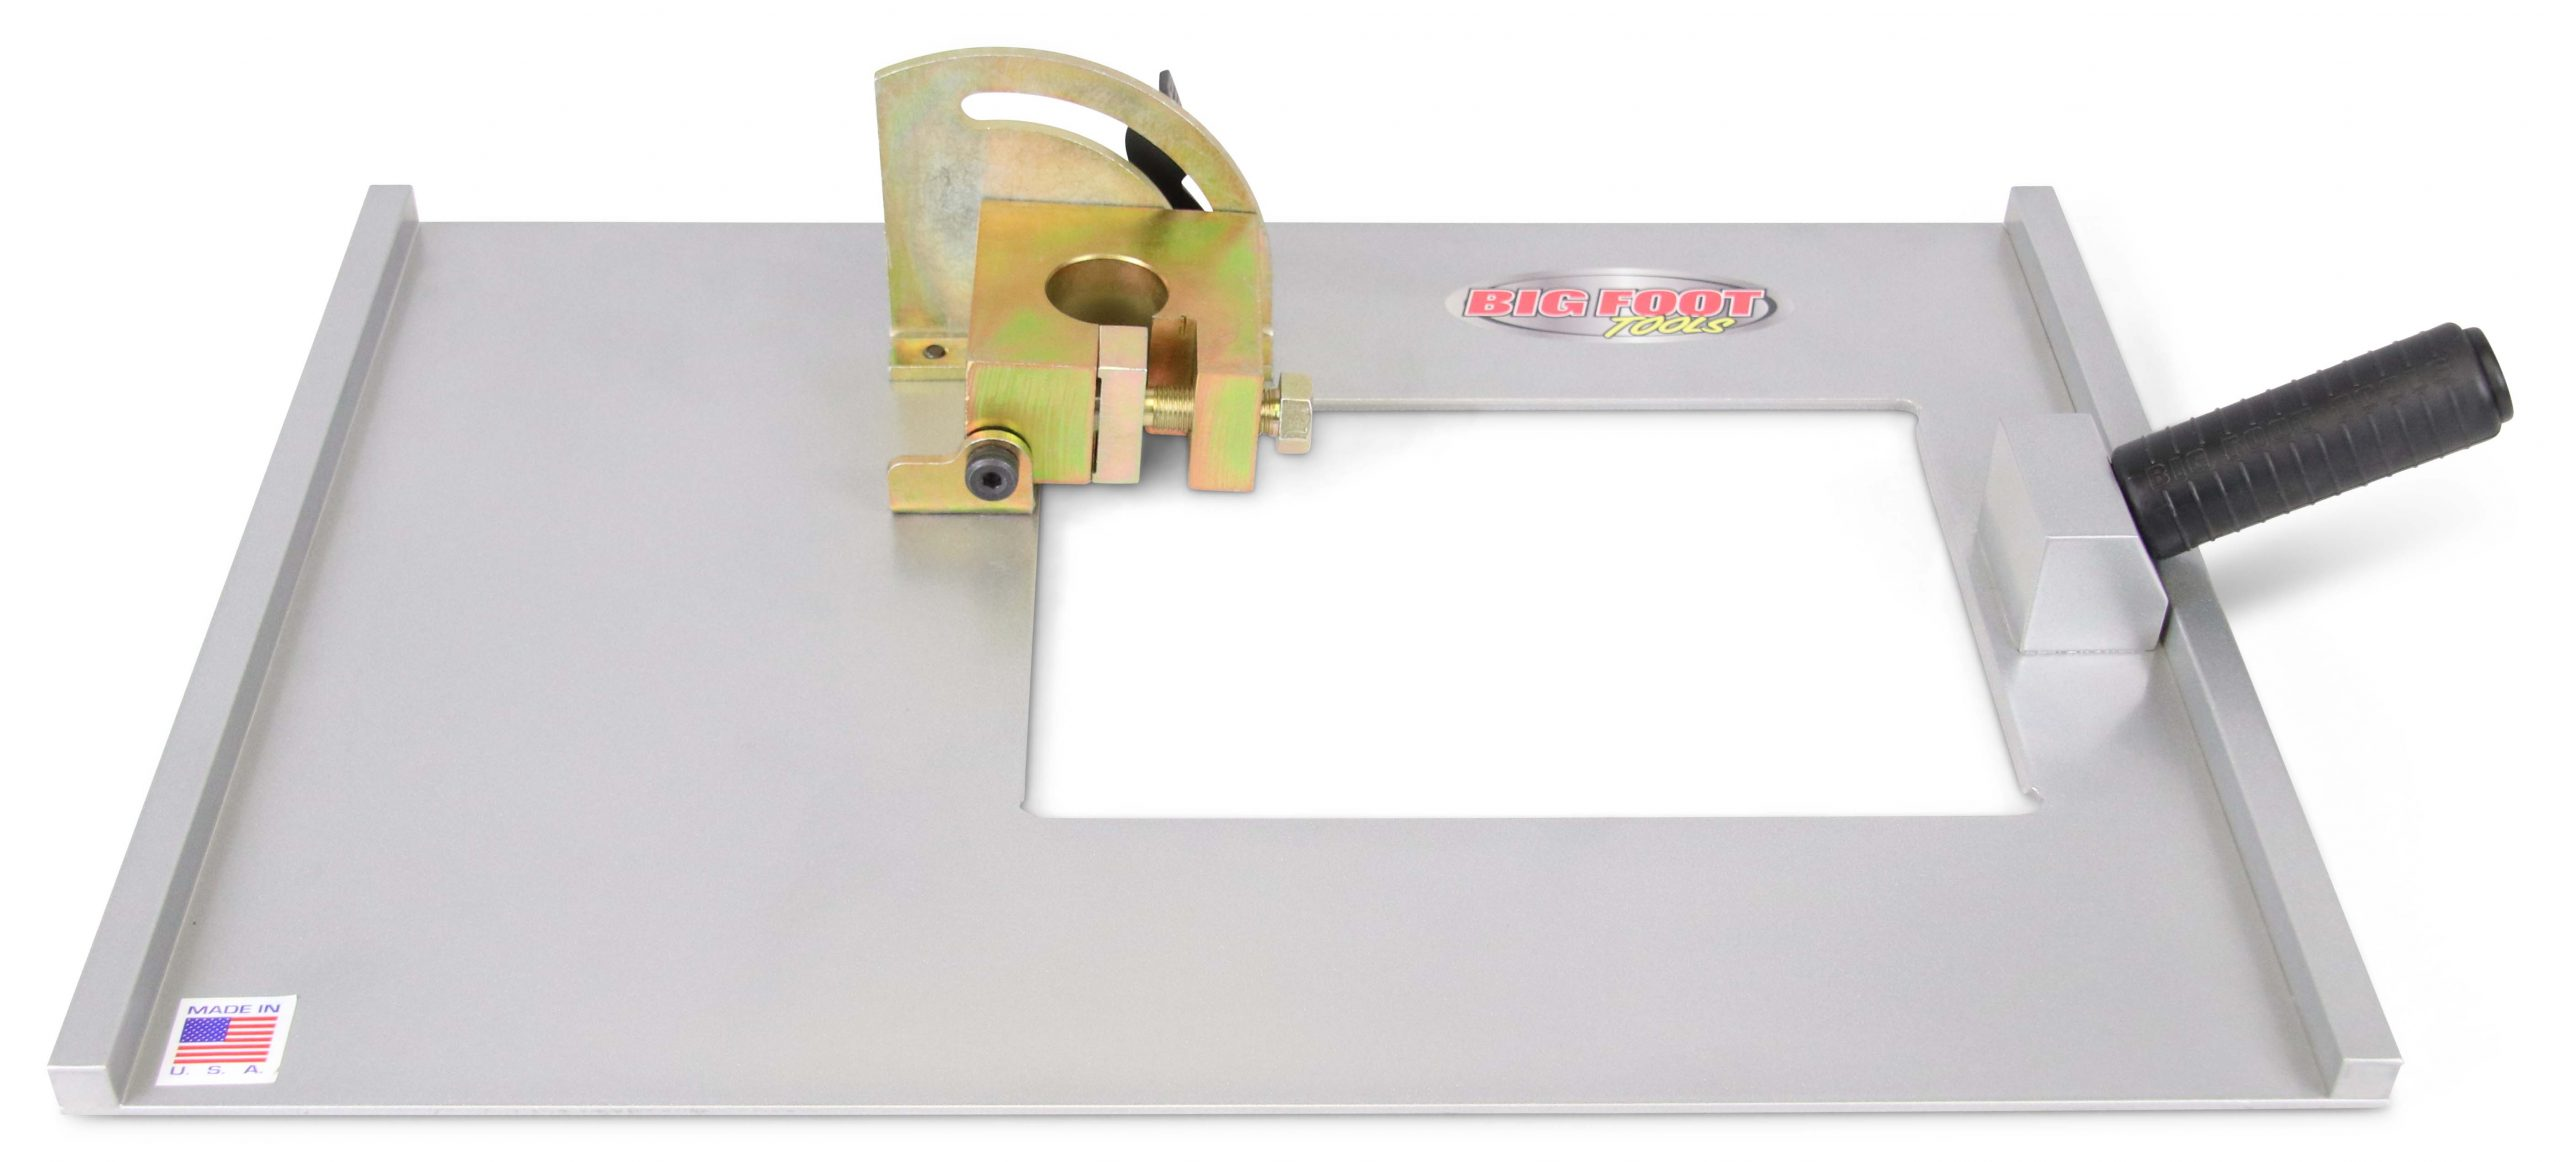 CS-75HCXL - Head Cutter XL